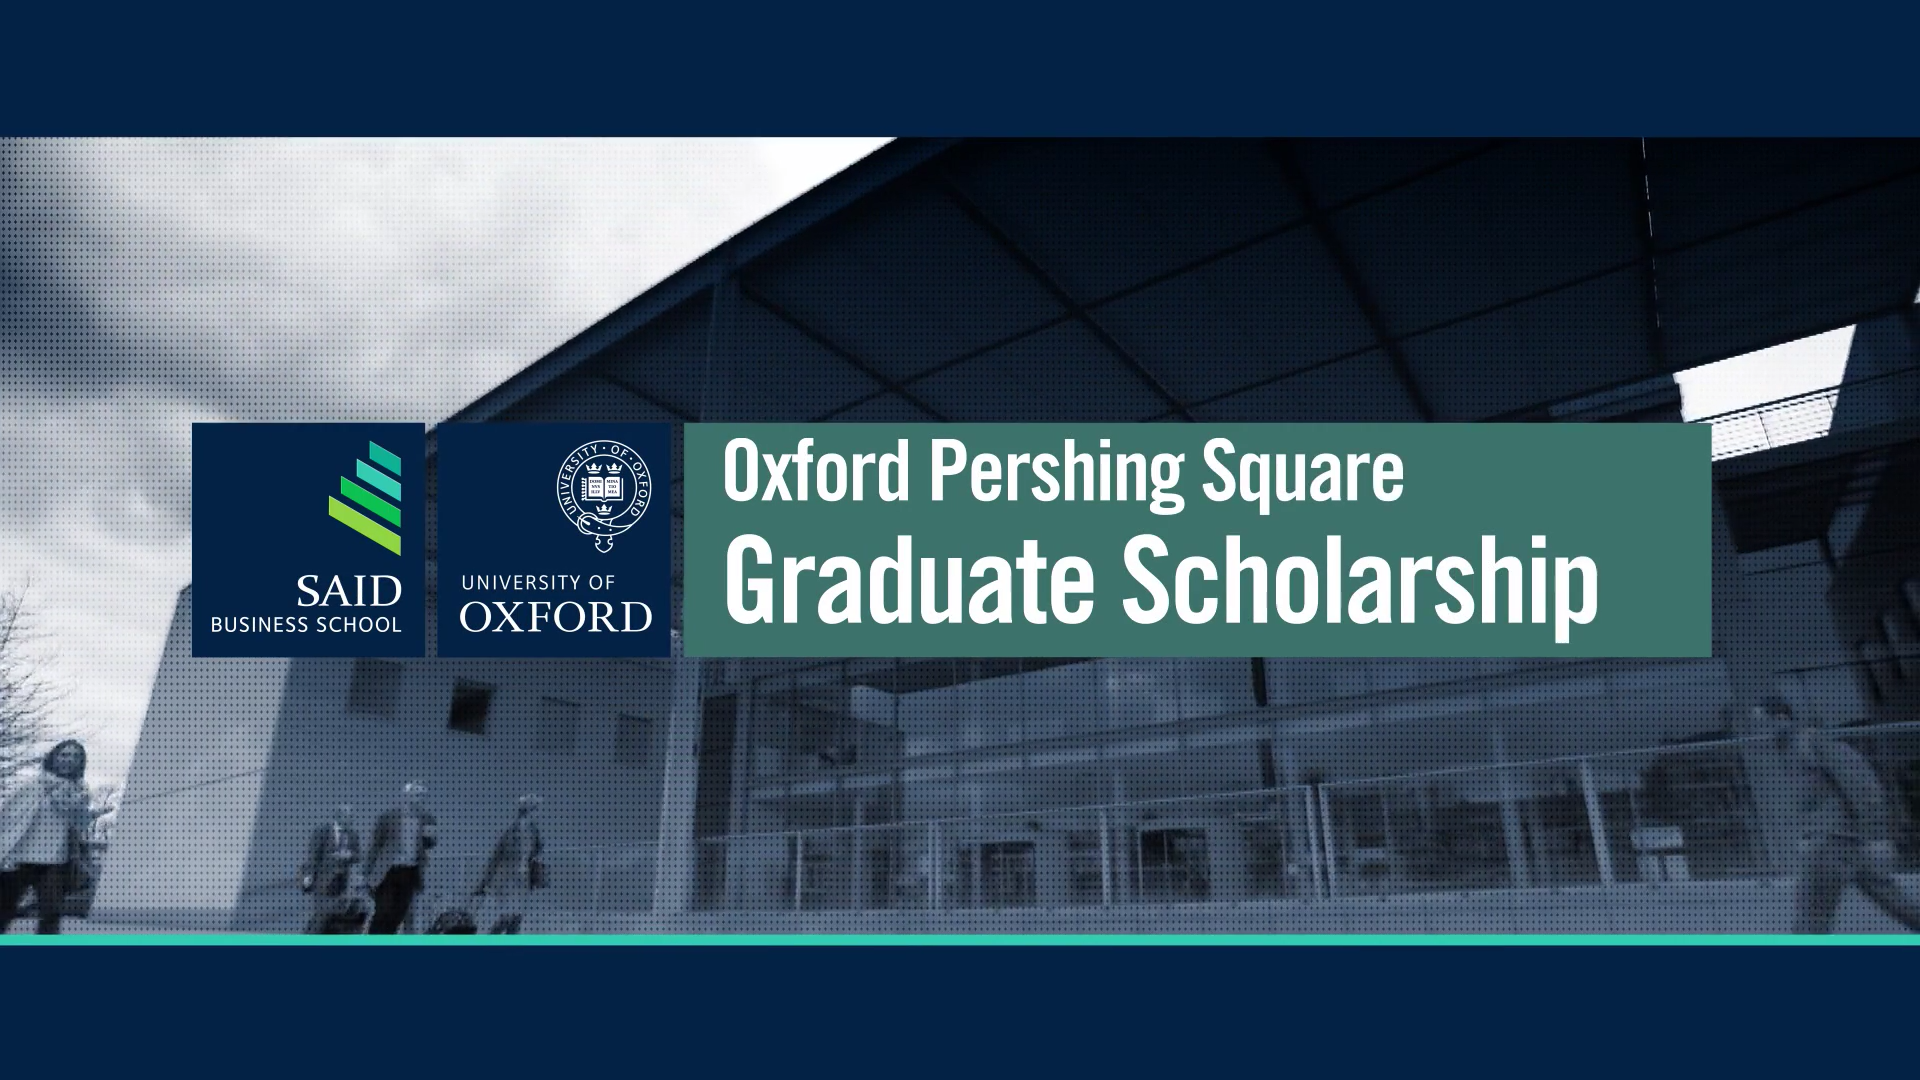 2018-20 Pershing Square Graduate Scholarship (U. of Oxford)